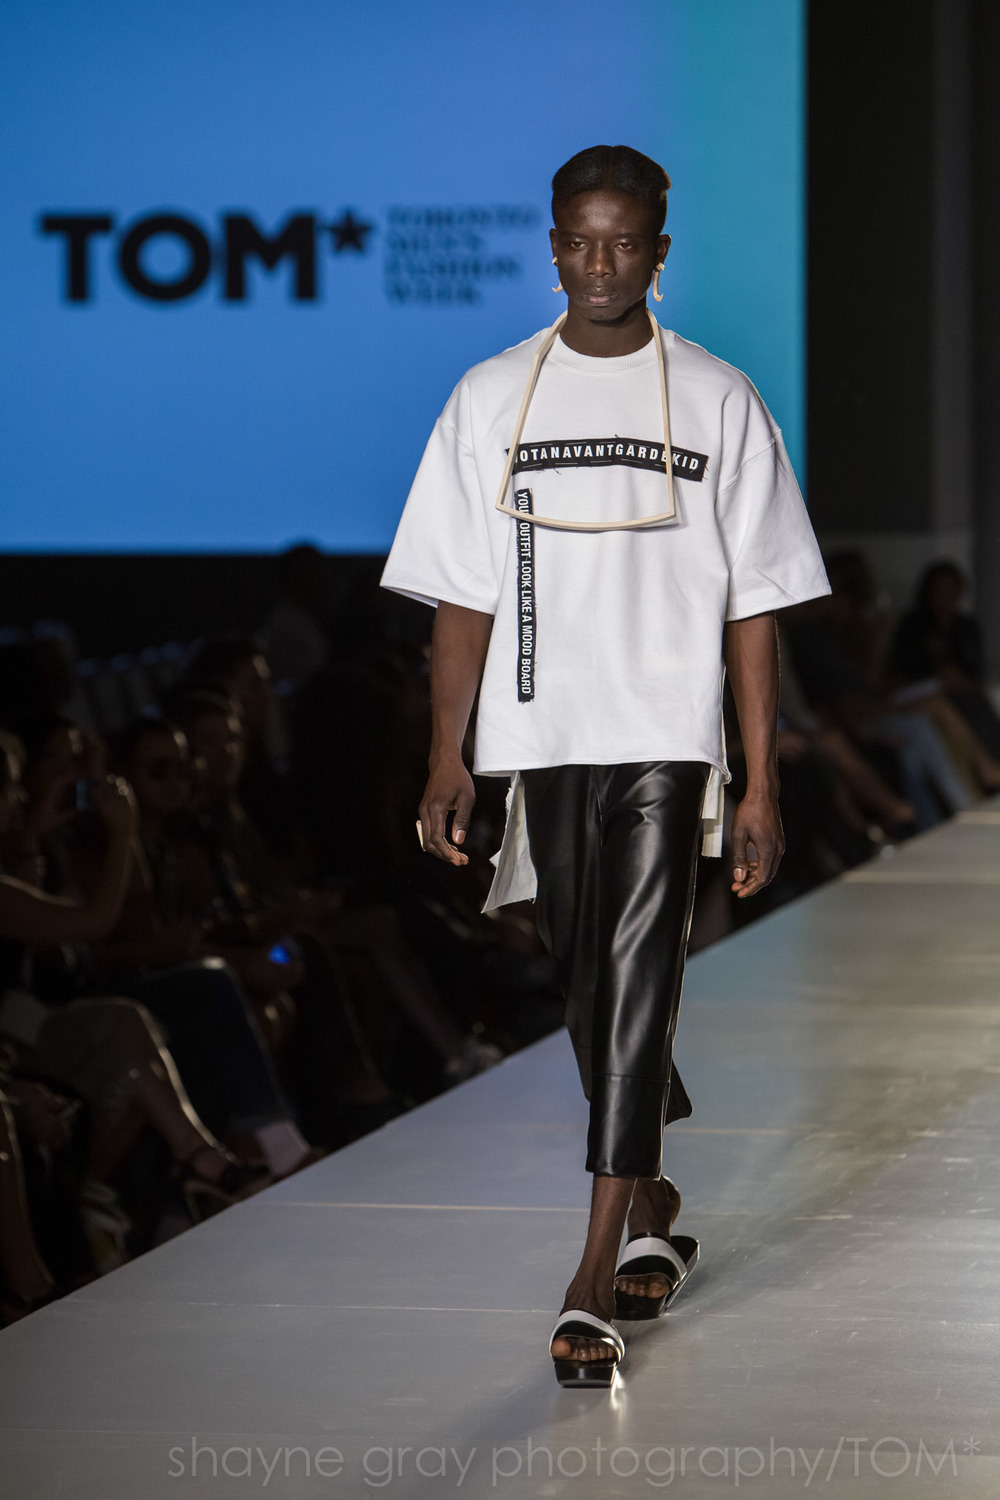 Shayne-Gray-Toronto-men's-fashion_week-TOM-wrkdept-8683.jpg